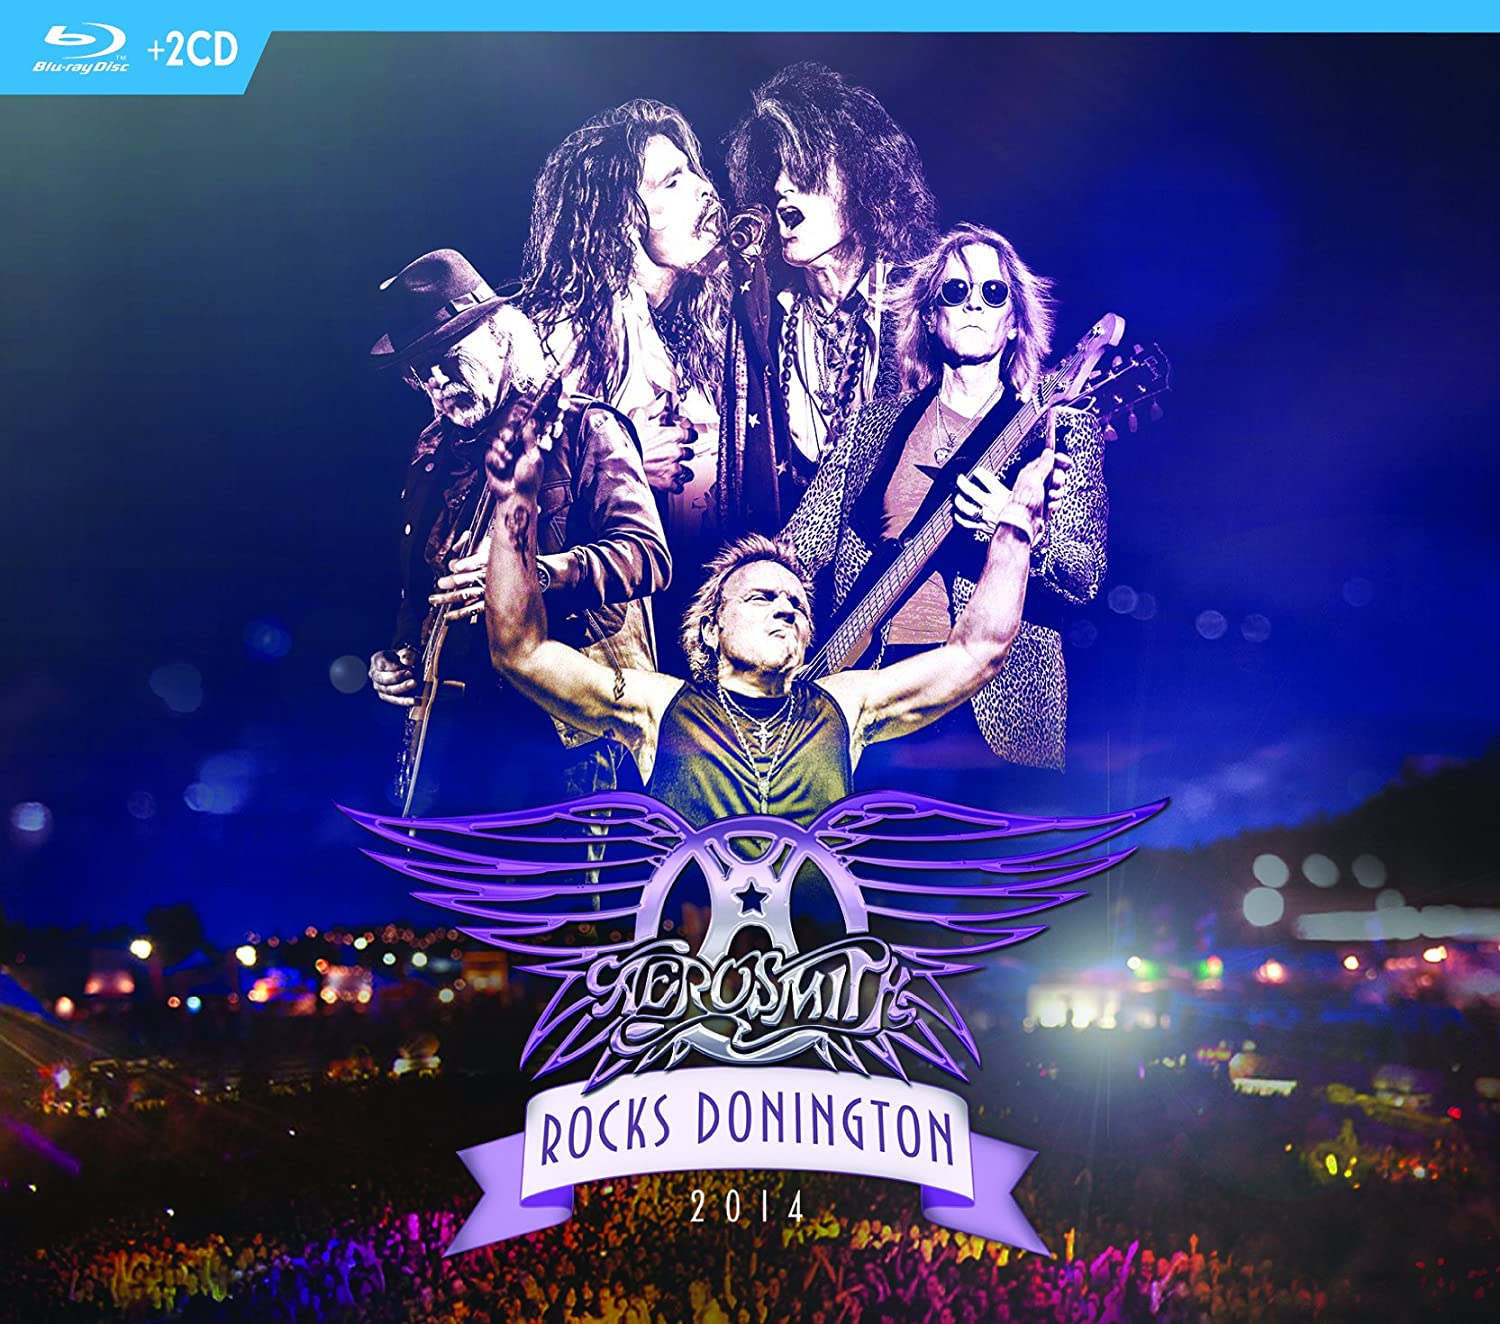 Aerosmith Rocks Donington (2014) 720p+1080p MBLURAY x264-DEV0